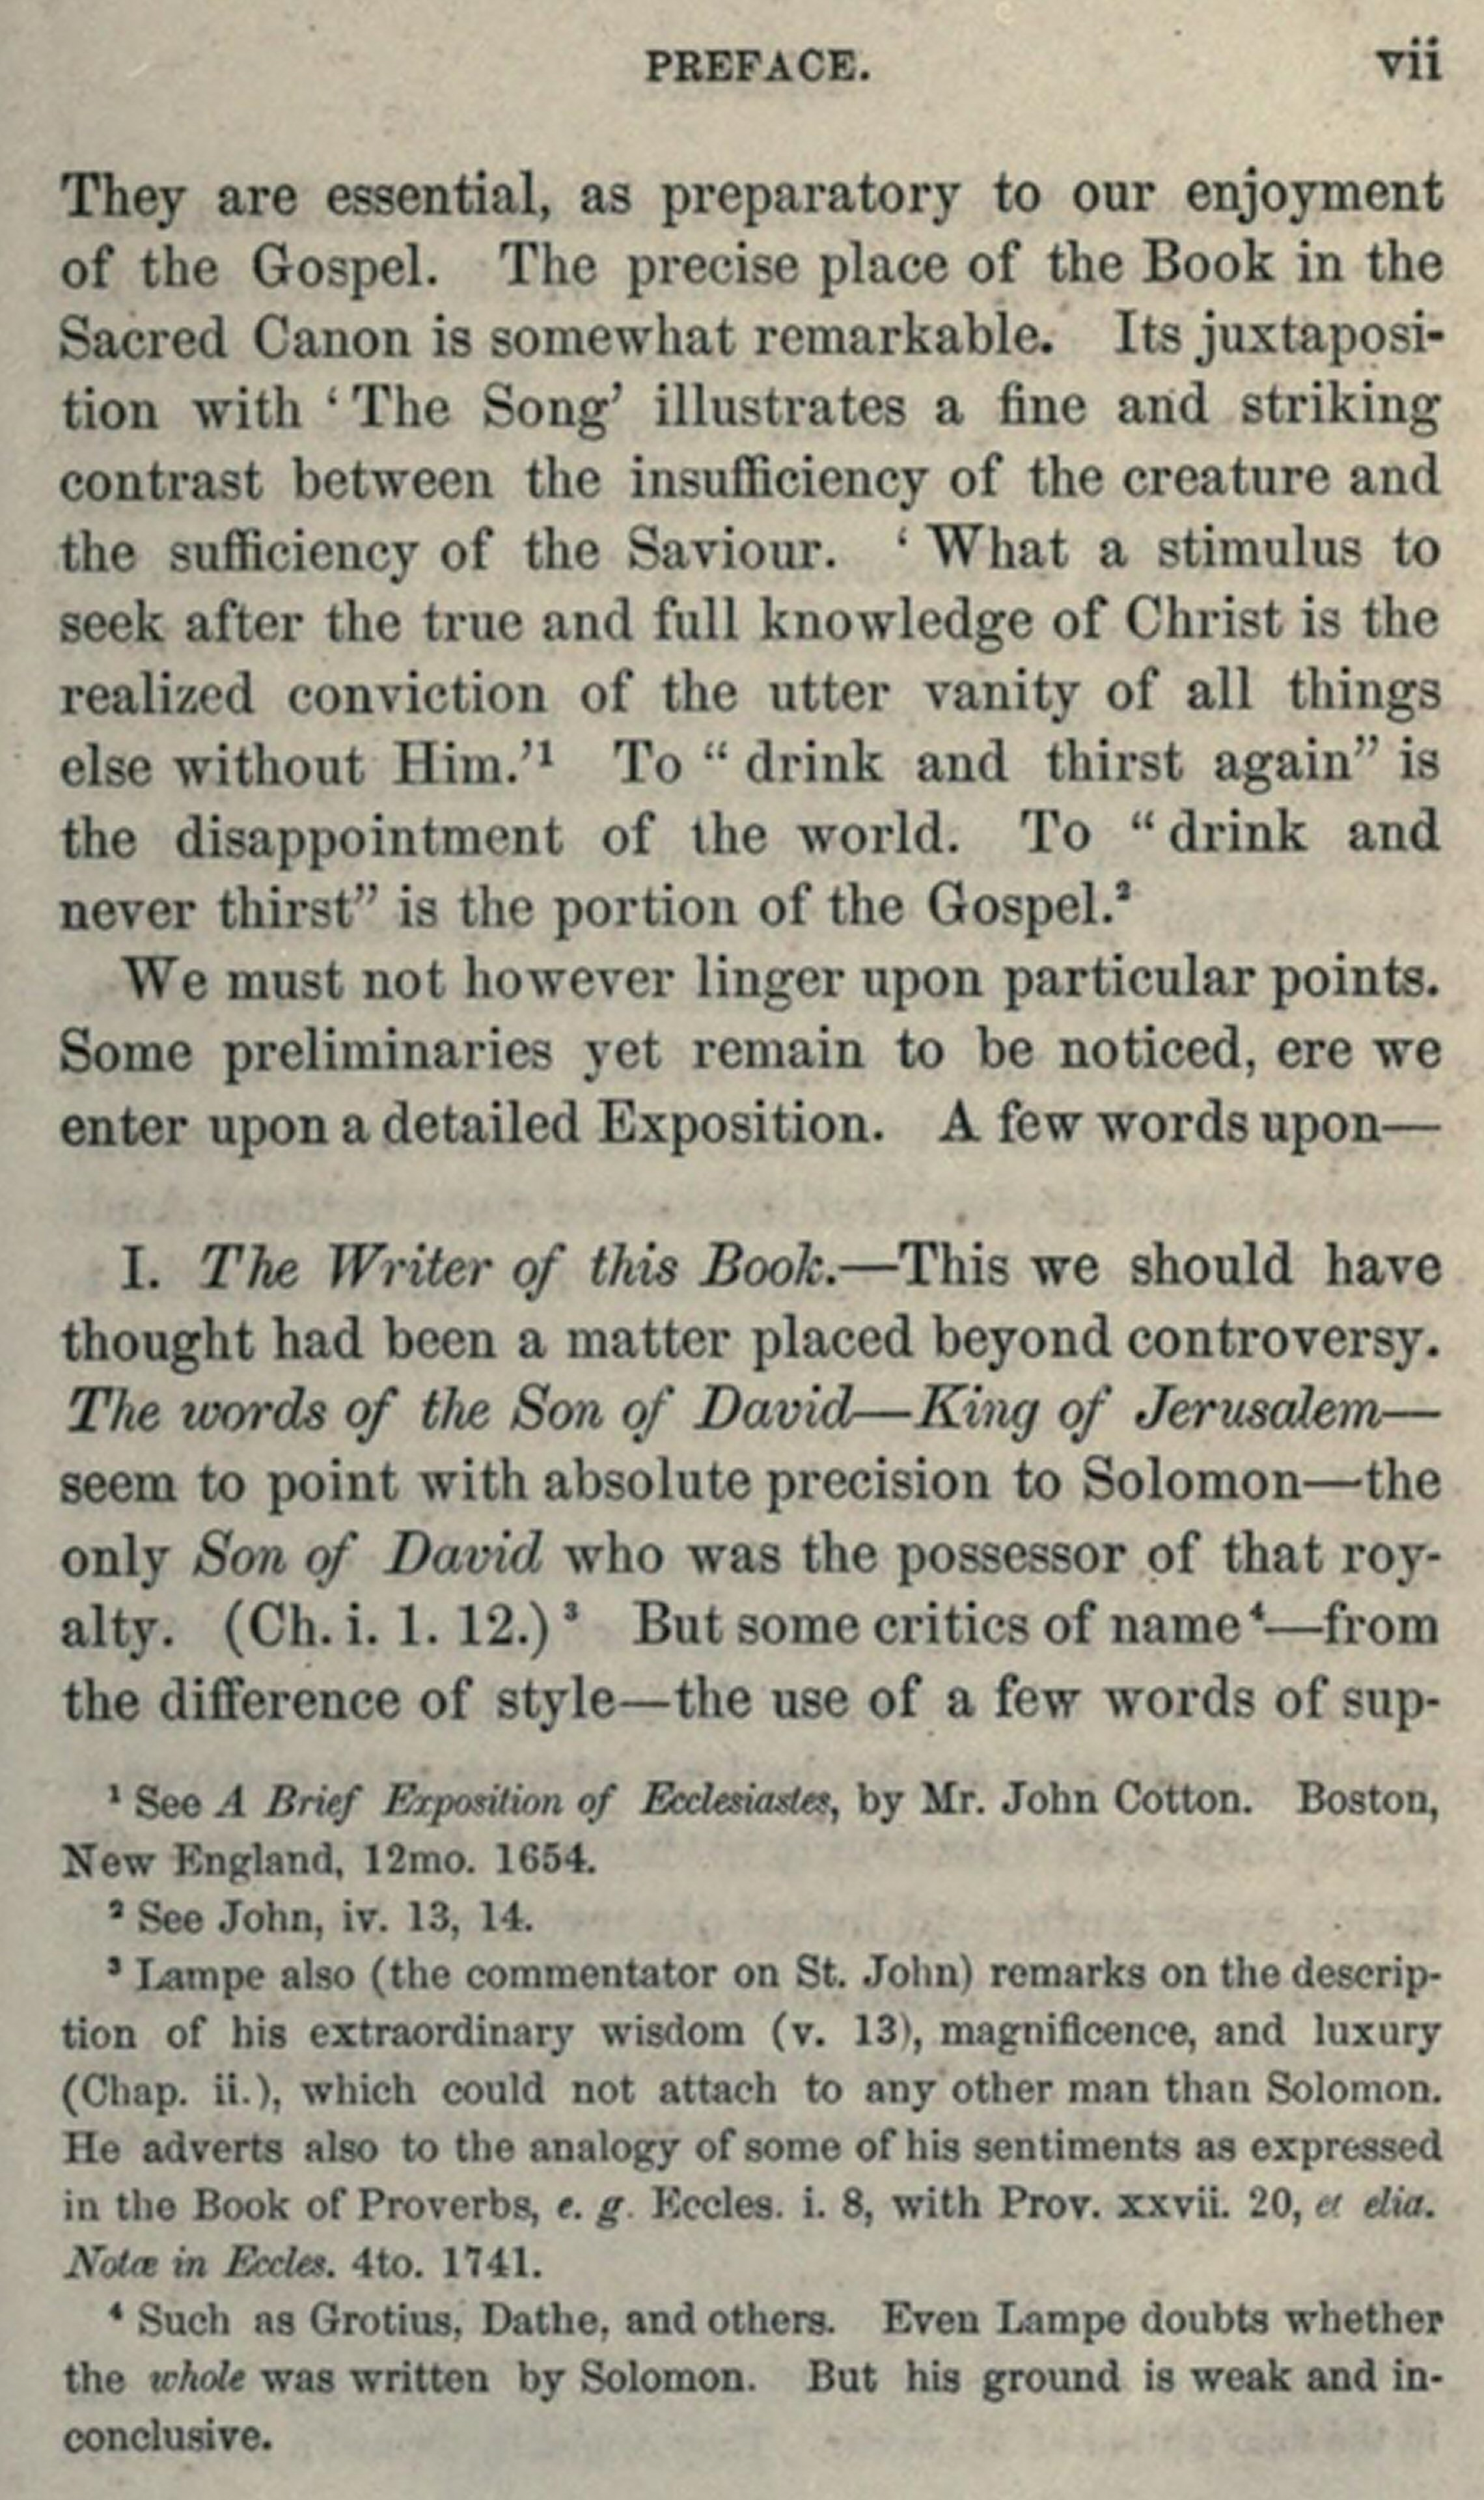 essay questions on the book of job Essay book of job: suffering the book of job 1:3, in the new oxford annonated bible, states job was the greatest man among all in the east he was a faithful servant of god, he owned thousands of animals, and had many servants and friends.